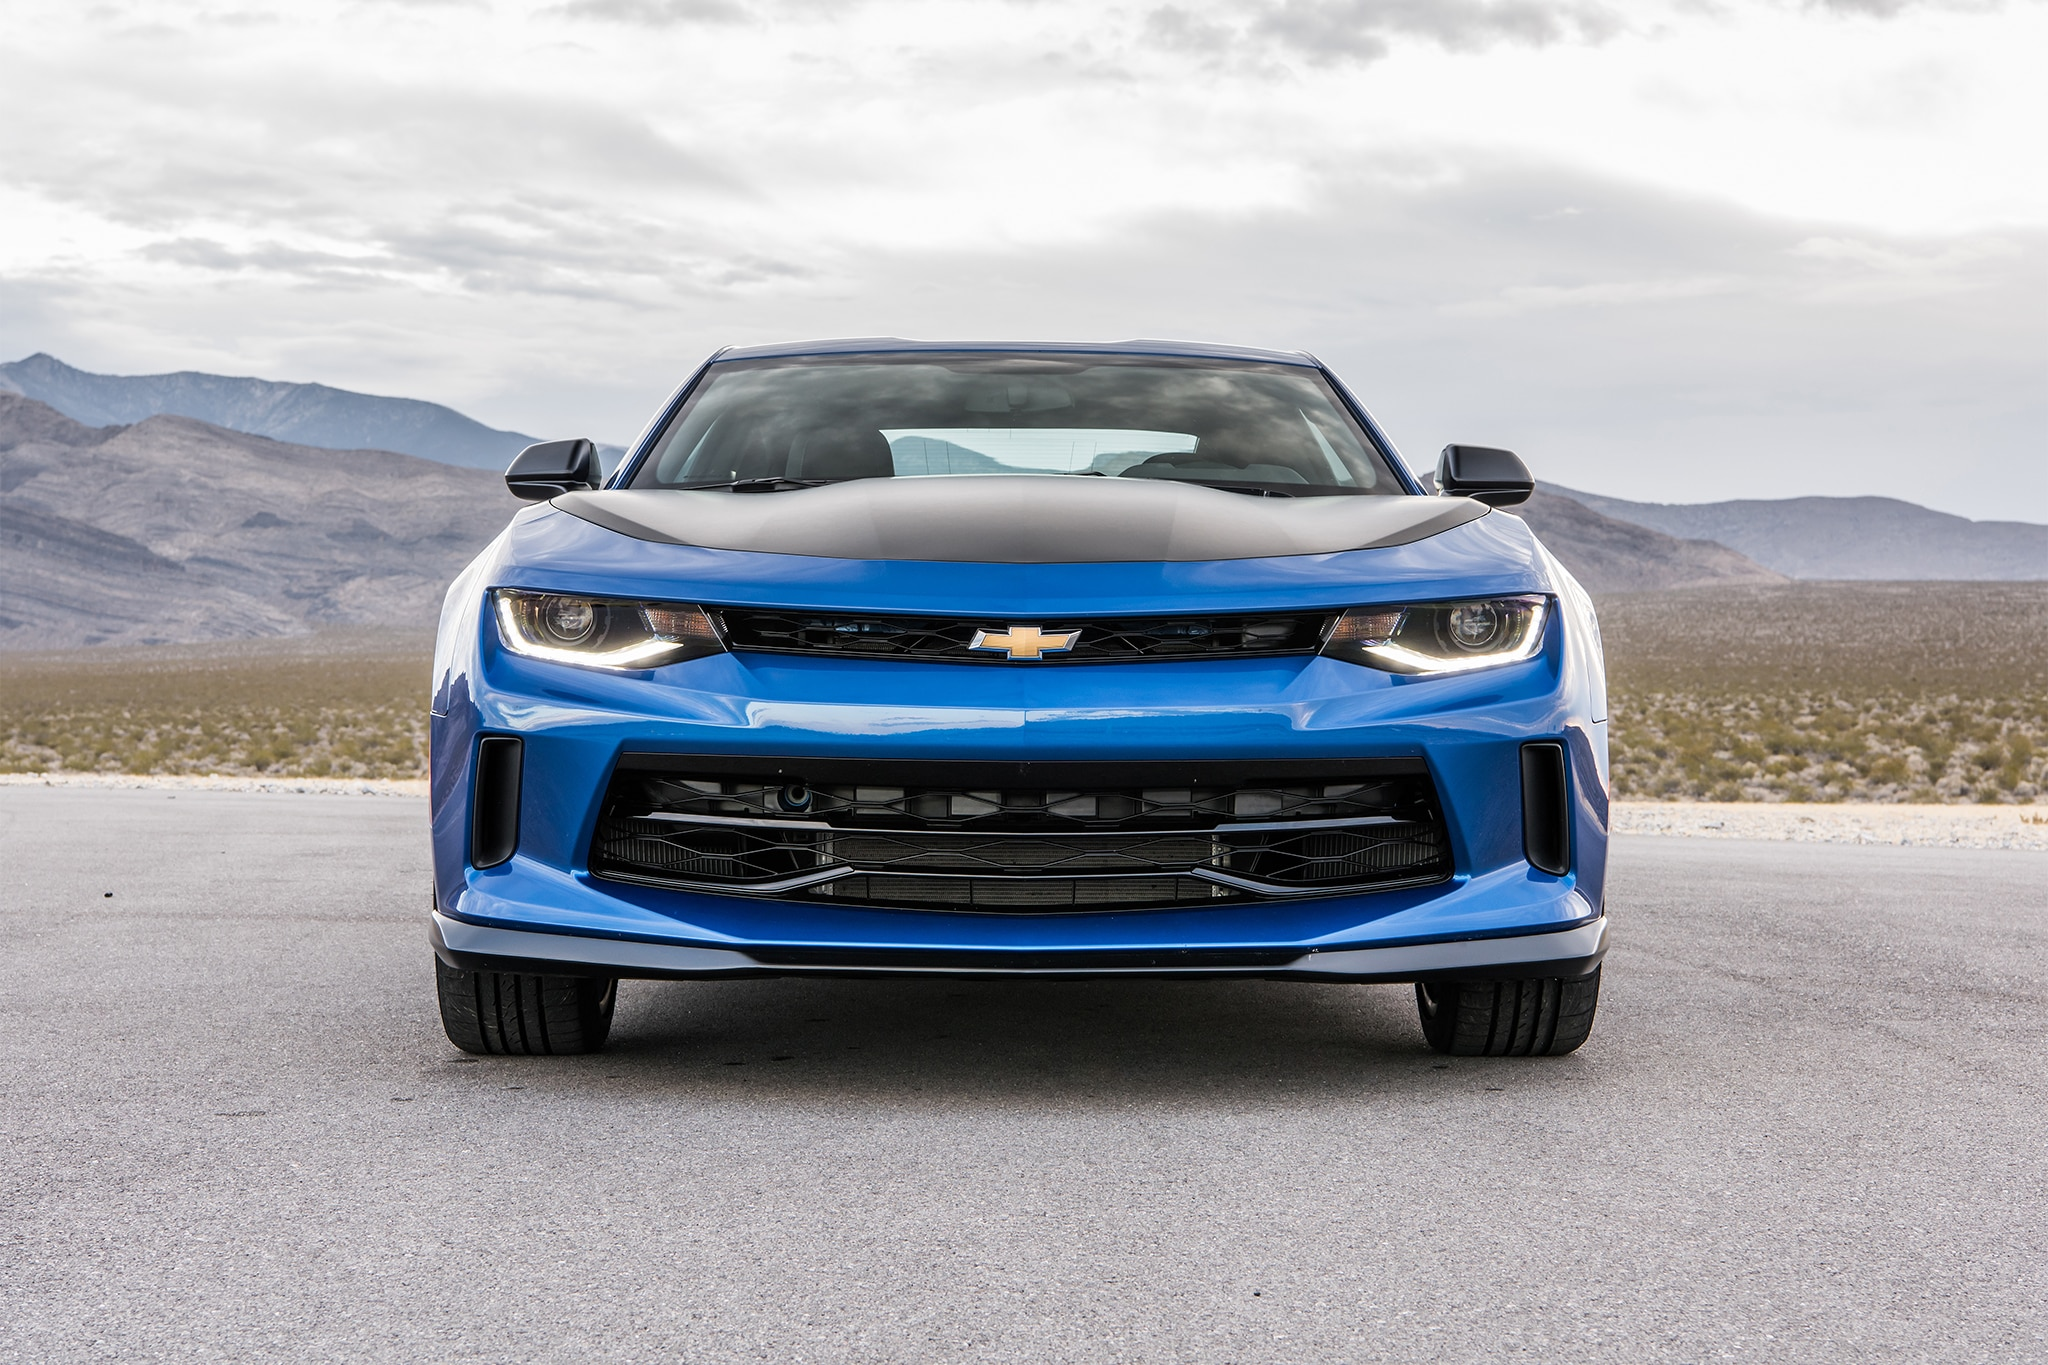 2017 Chevrolet Camaro V-6 1LE One Week Review | Automobile